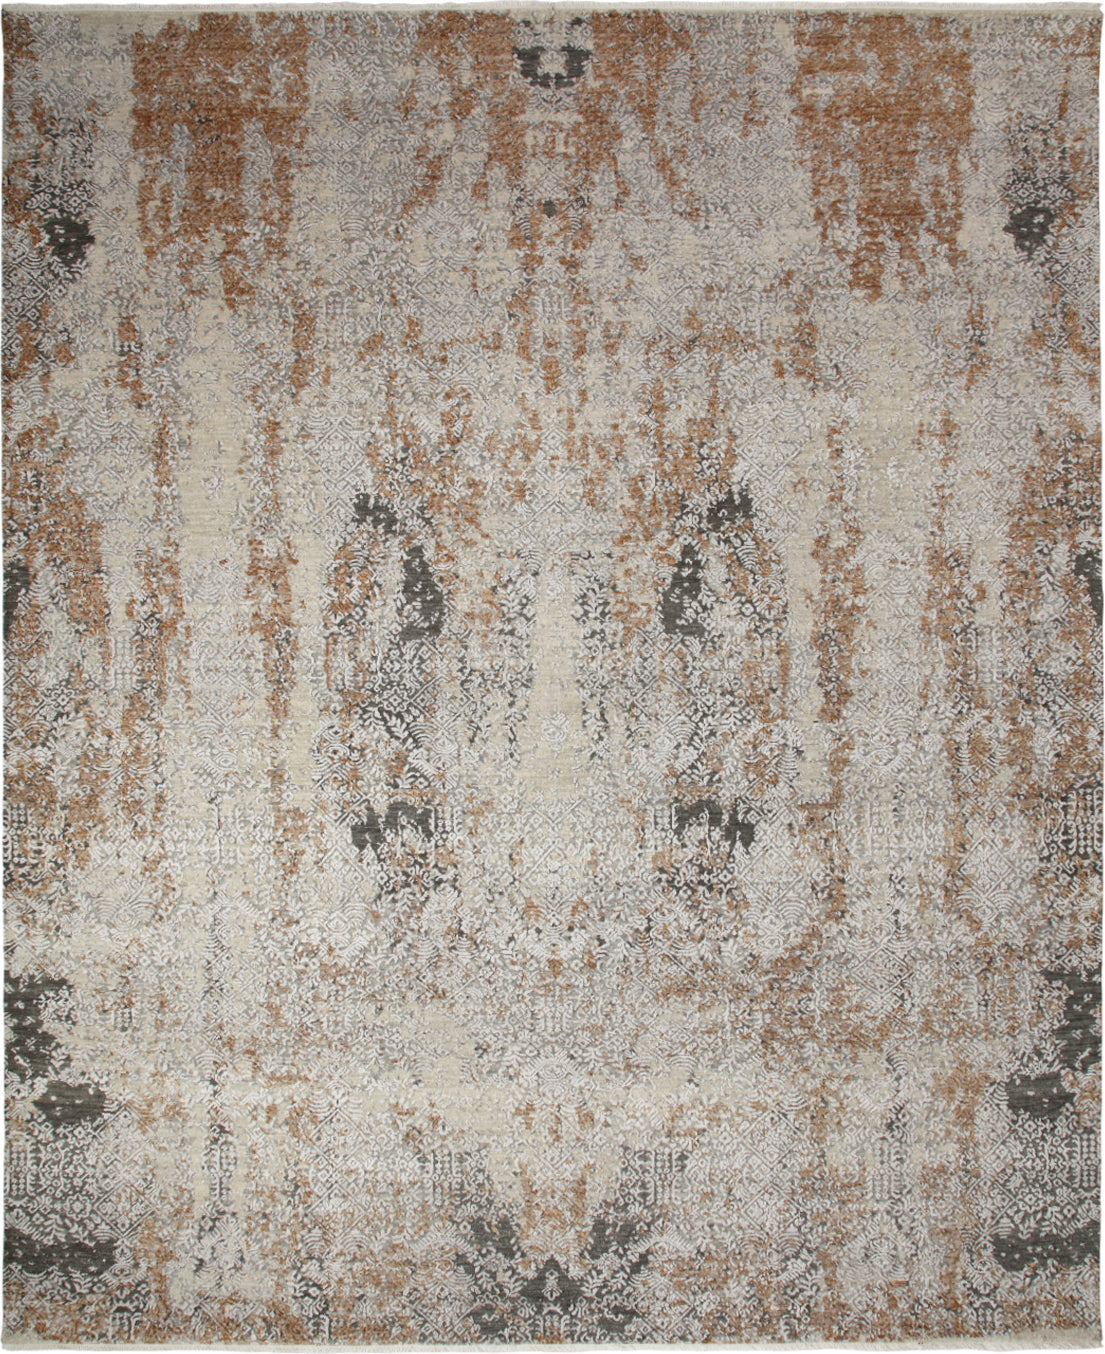 Solo Rugs Jankat M8051-10 Beige Area Rug main image